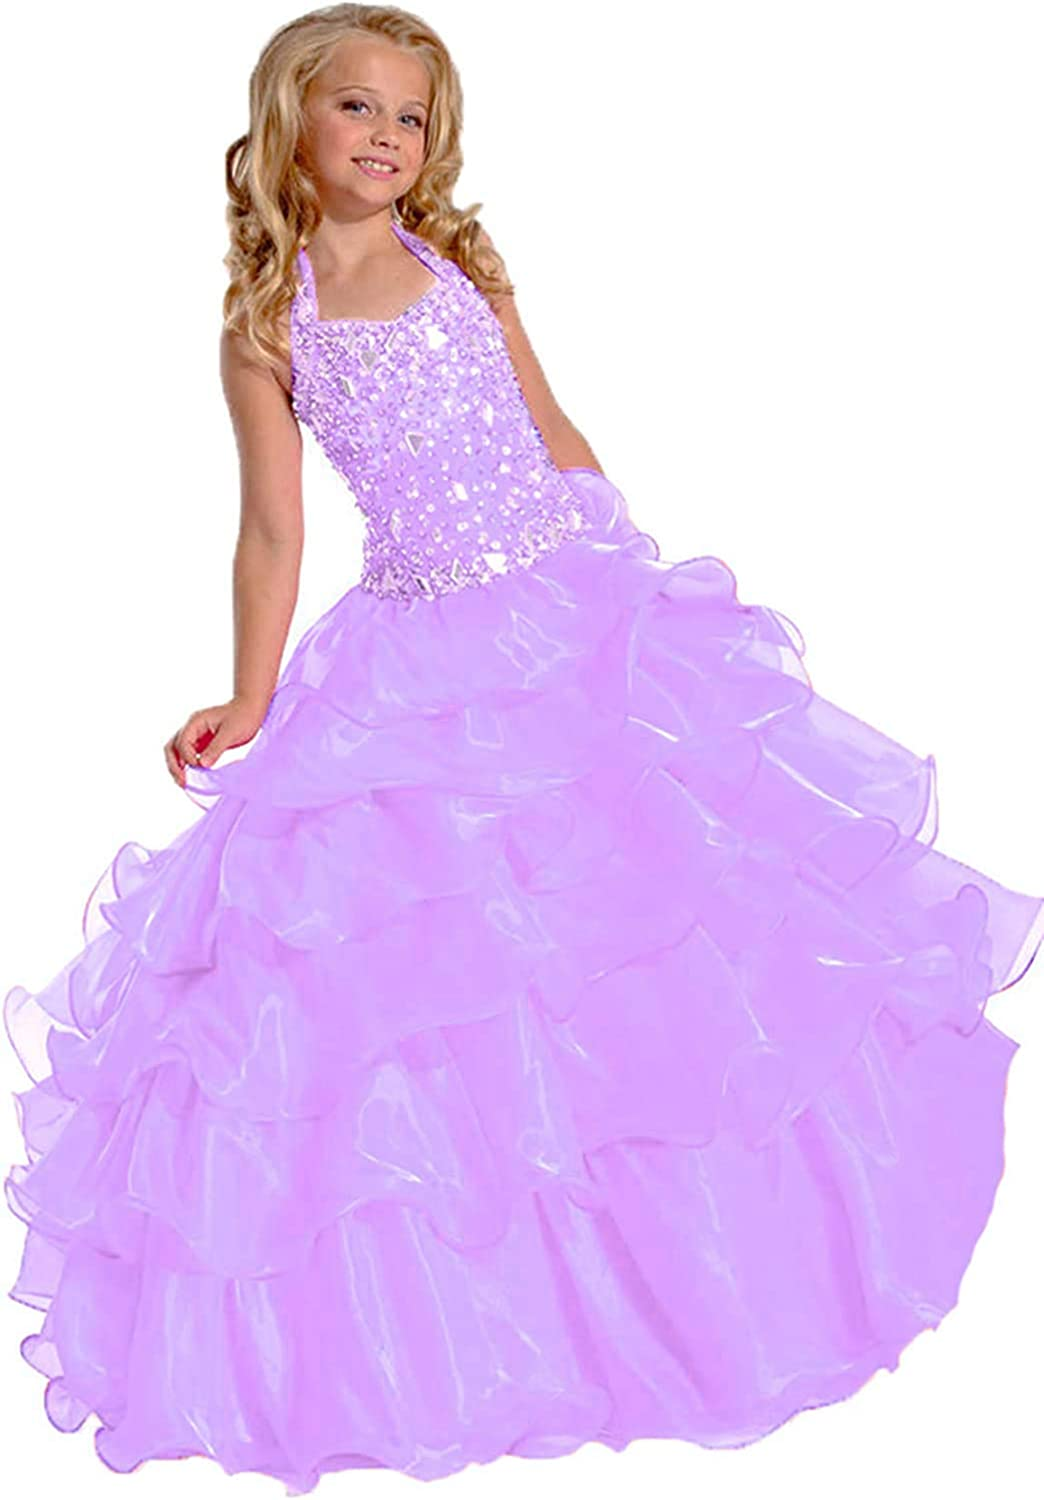 Junguan Girl's Halter Beaded Rhinestones Pageant Dress Classic Birthday Wedding Party Long Gown